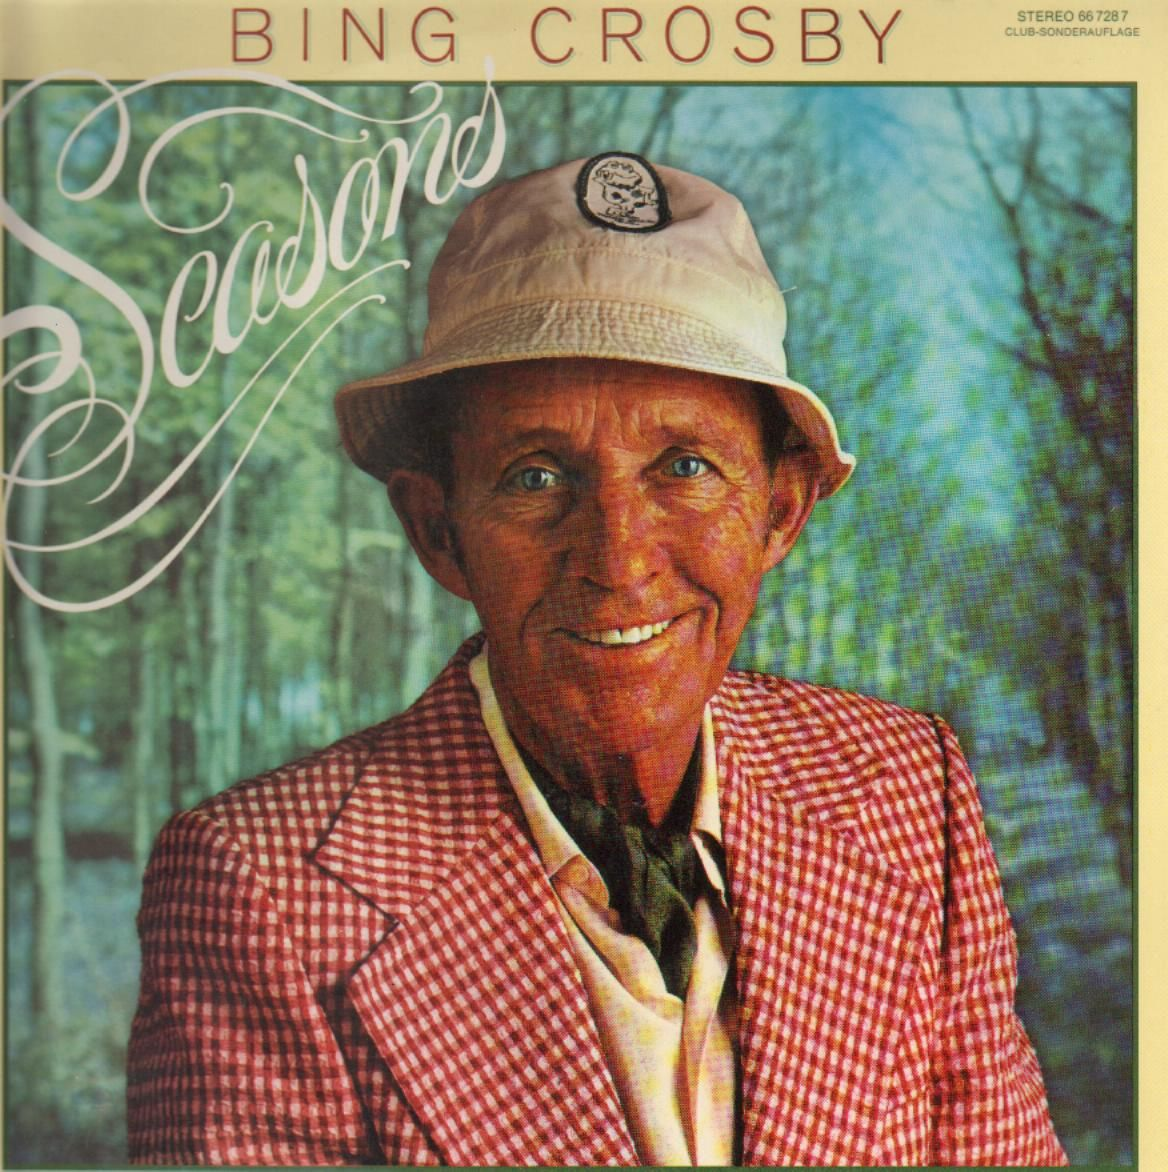 bing-crosby-seasons-cover.jpg